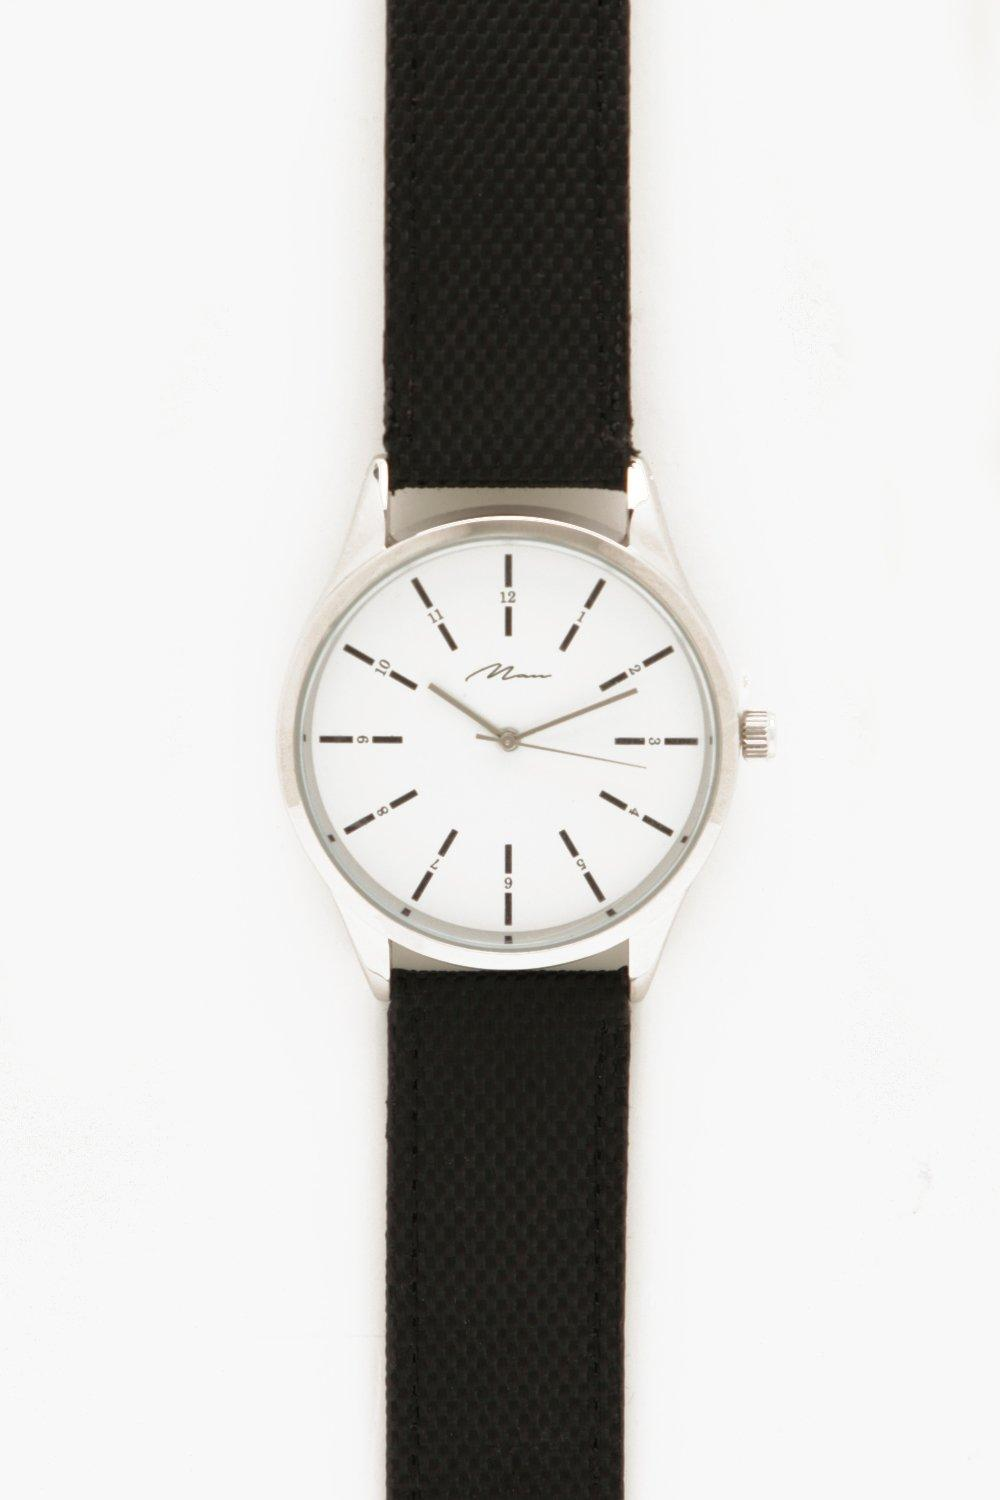 boohooMAN Black Strap Watch With White Dial